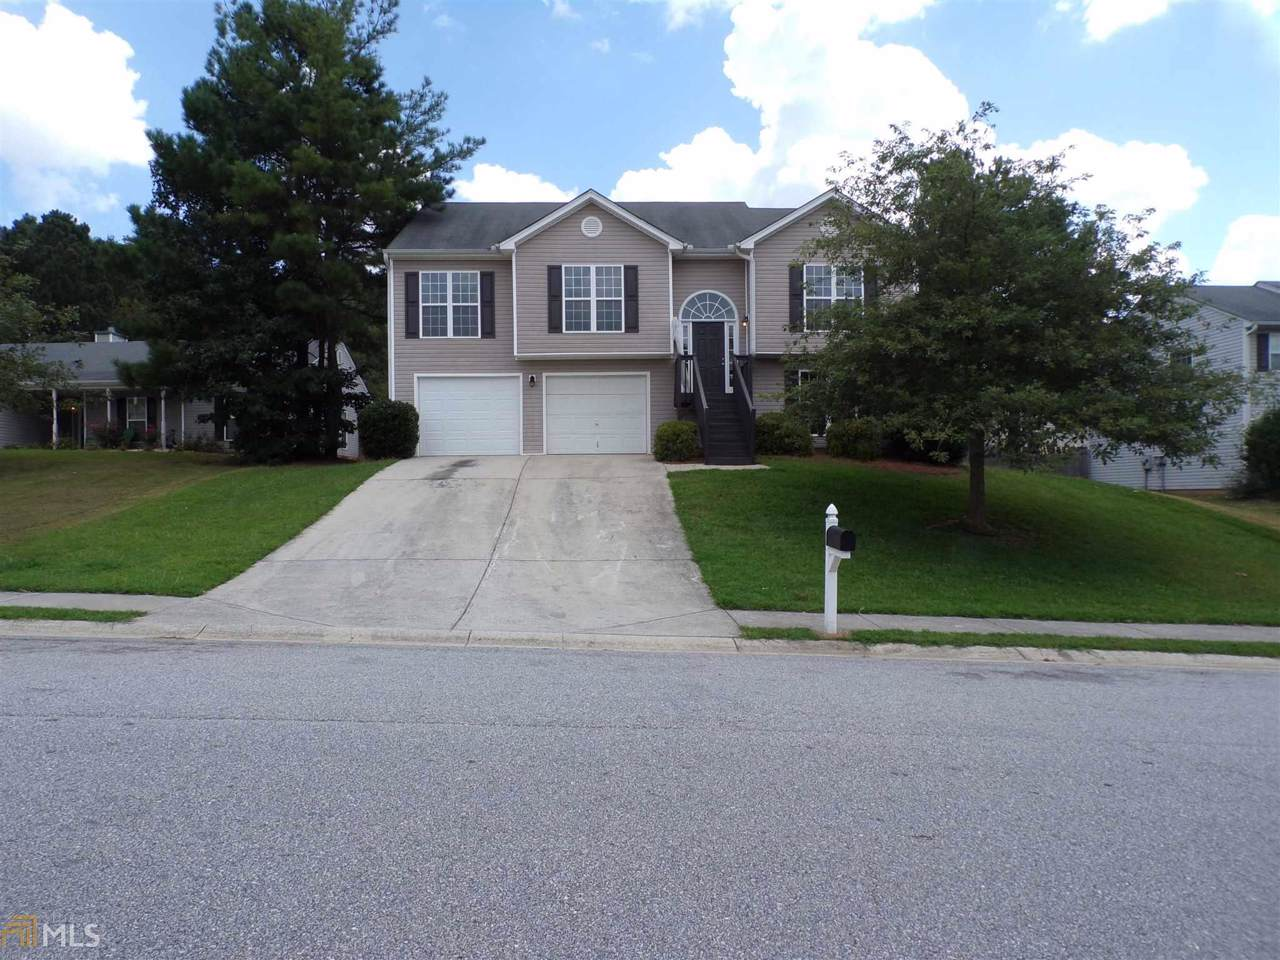 1253 Maxey Ct - Photo 1